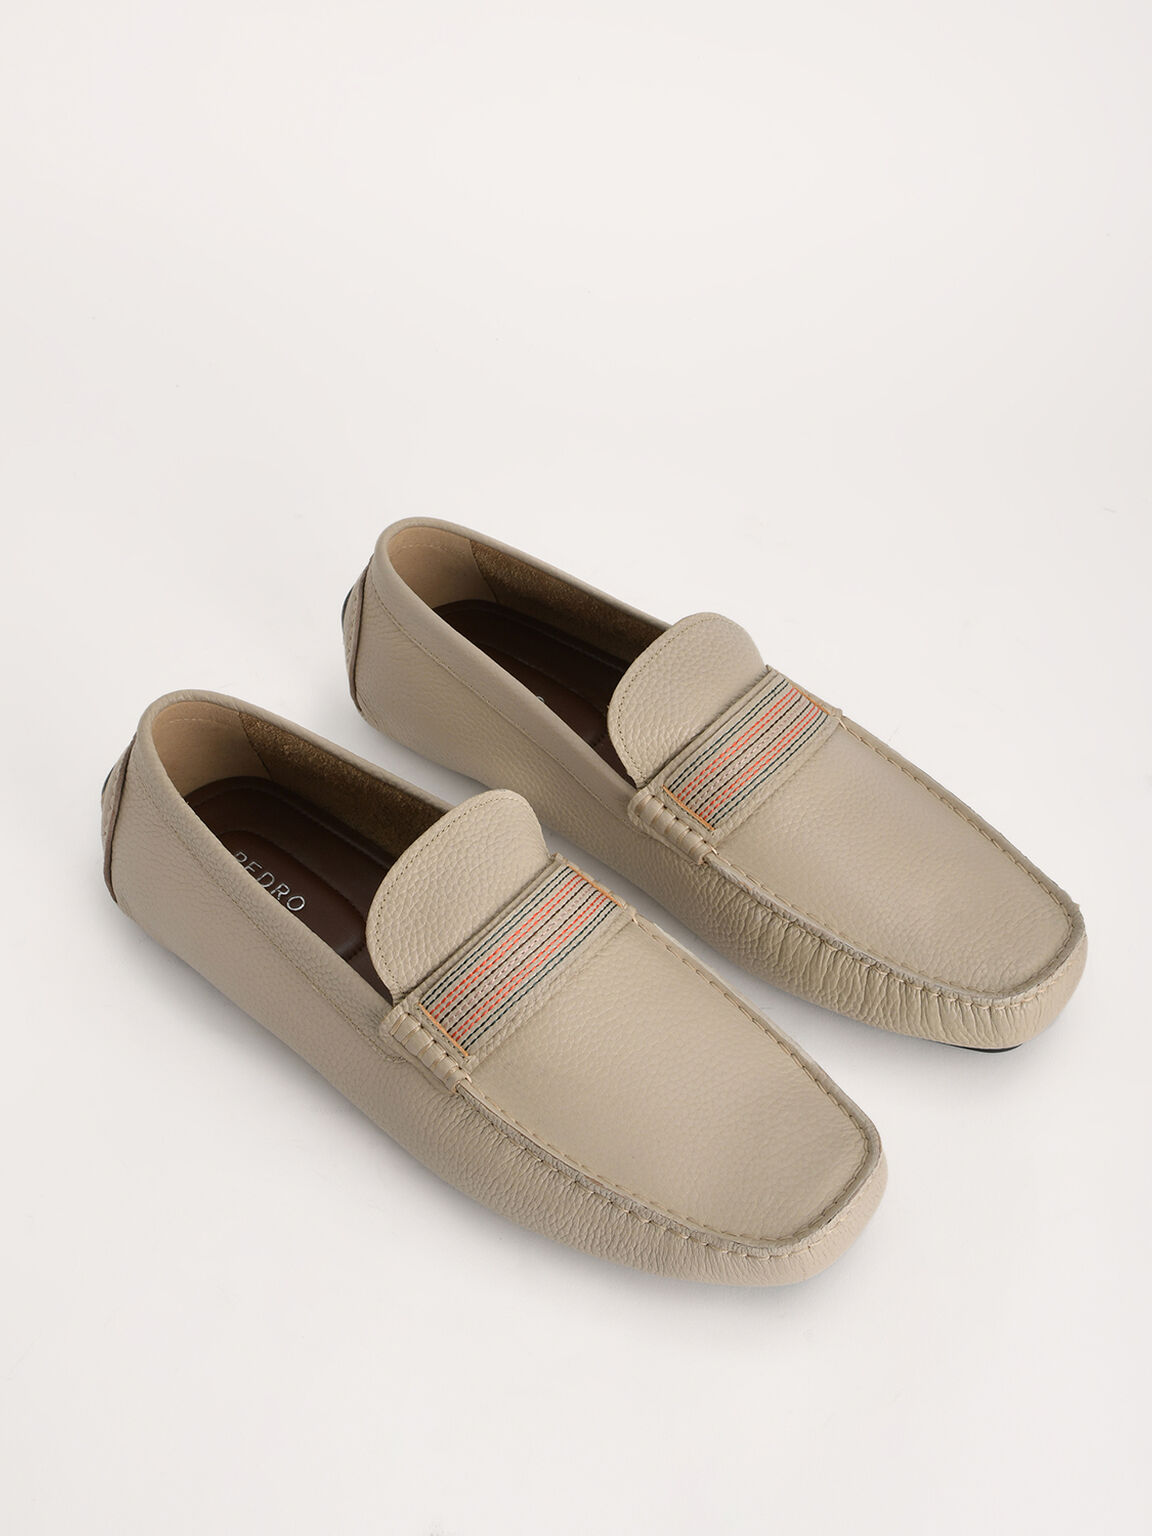 Detailed Leather Moccasin, Taupe, hi-res